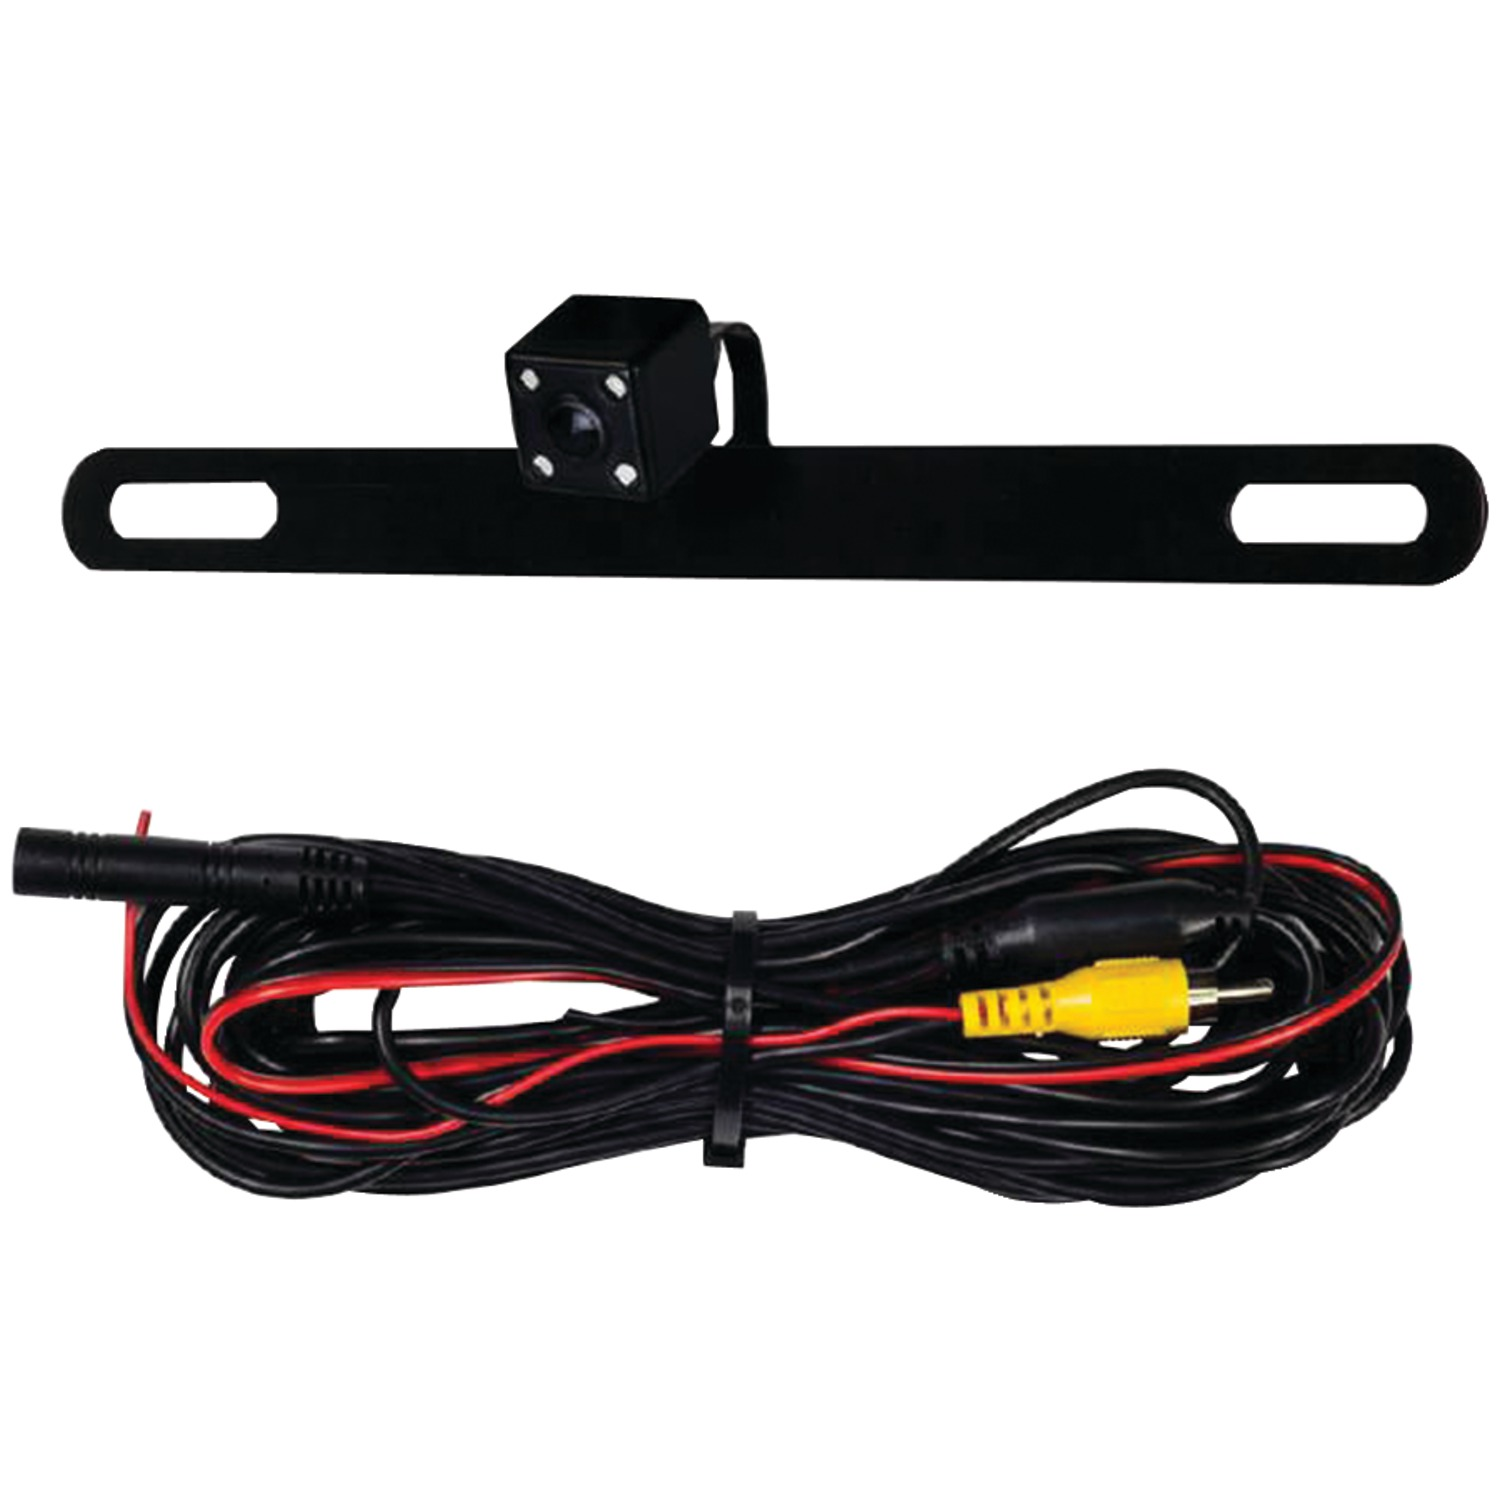 Ibeam Vehicle Safety Systems TE-BPCIR Behind License Plate Camera With Ir Leds